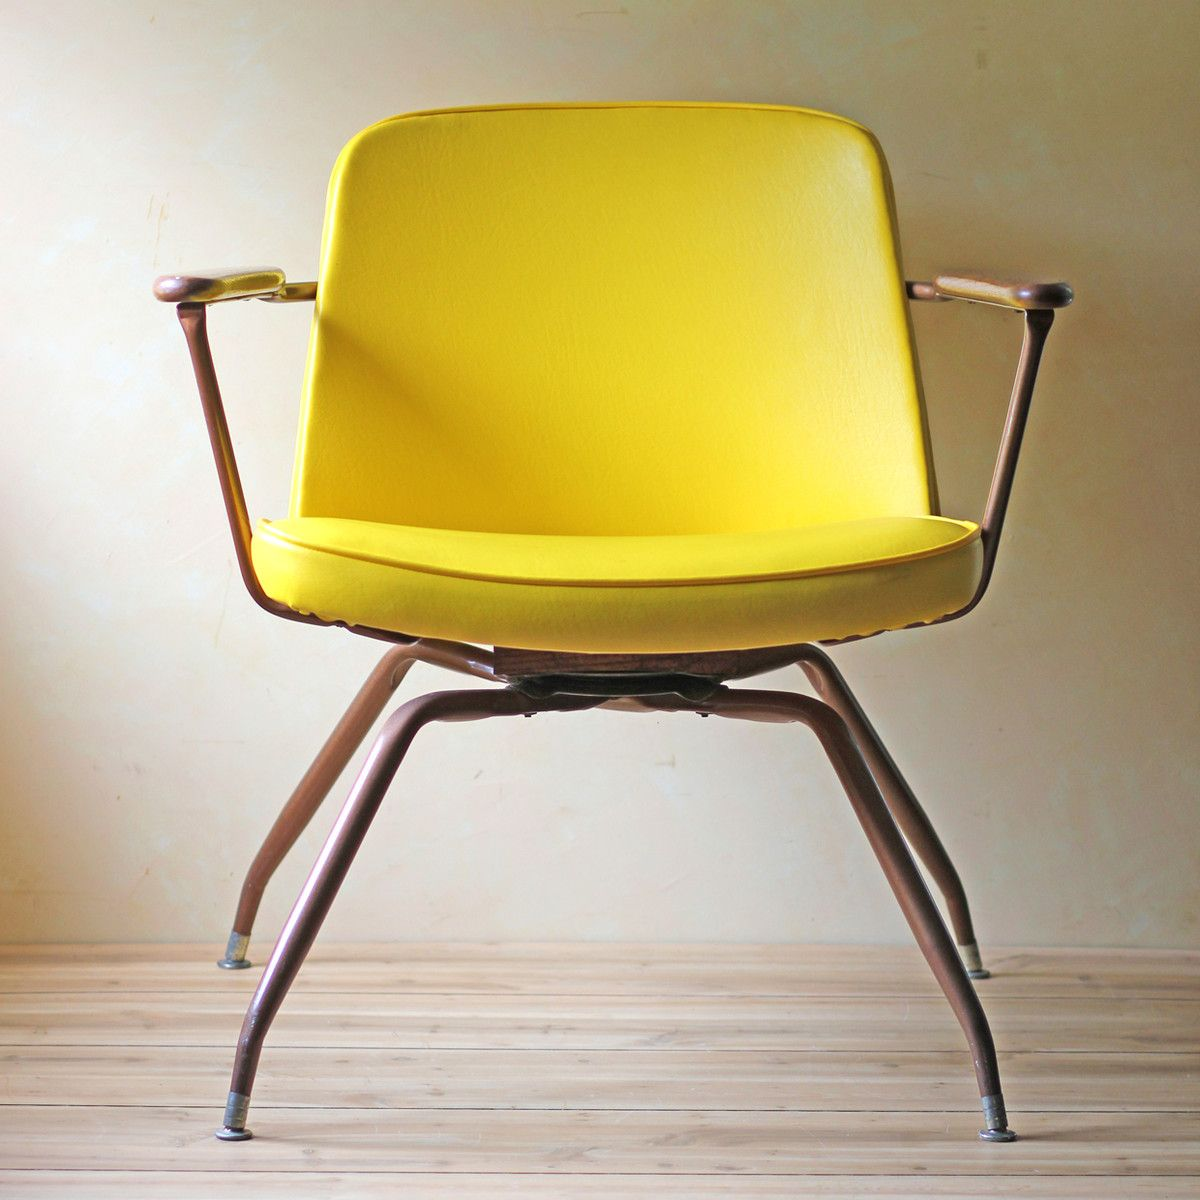 Miraculous Mid Century Spider Chair Yellow By Modish Vintage What An Ibusinesslaw Wood Chair Design Ideas Ibusinesslaworg